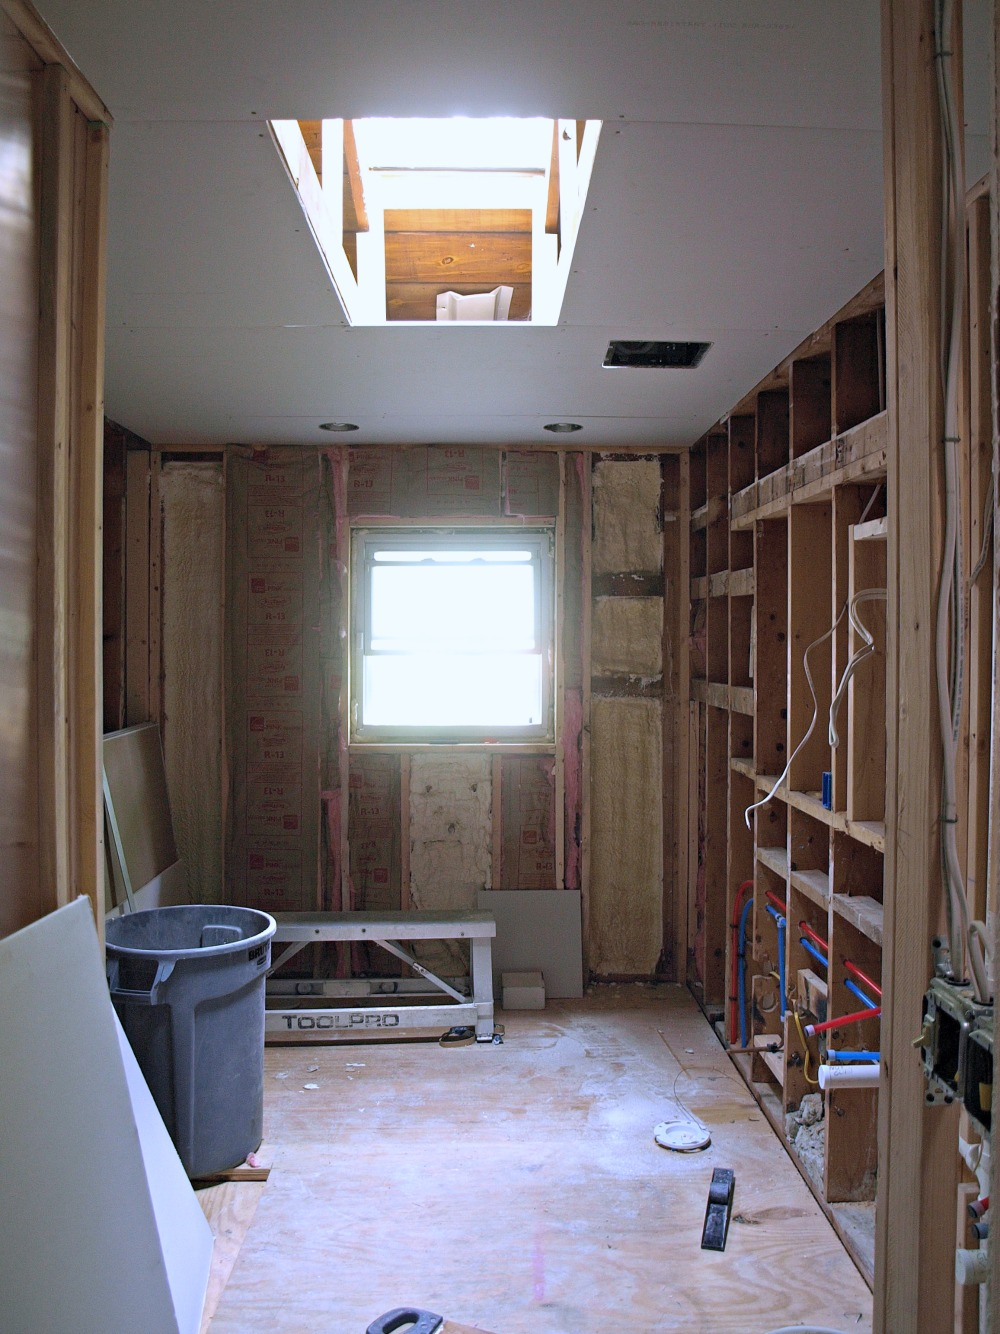 keep in mind this bathroom was gutted down to the studs and the layout was completely reconfigured: architecture bathroom toilet